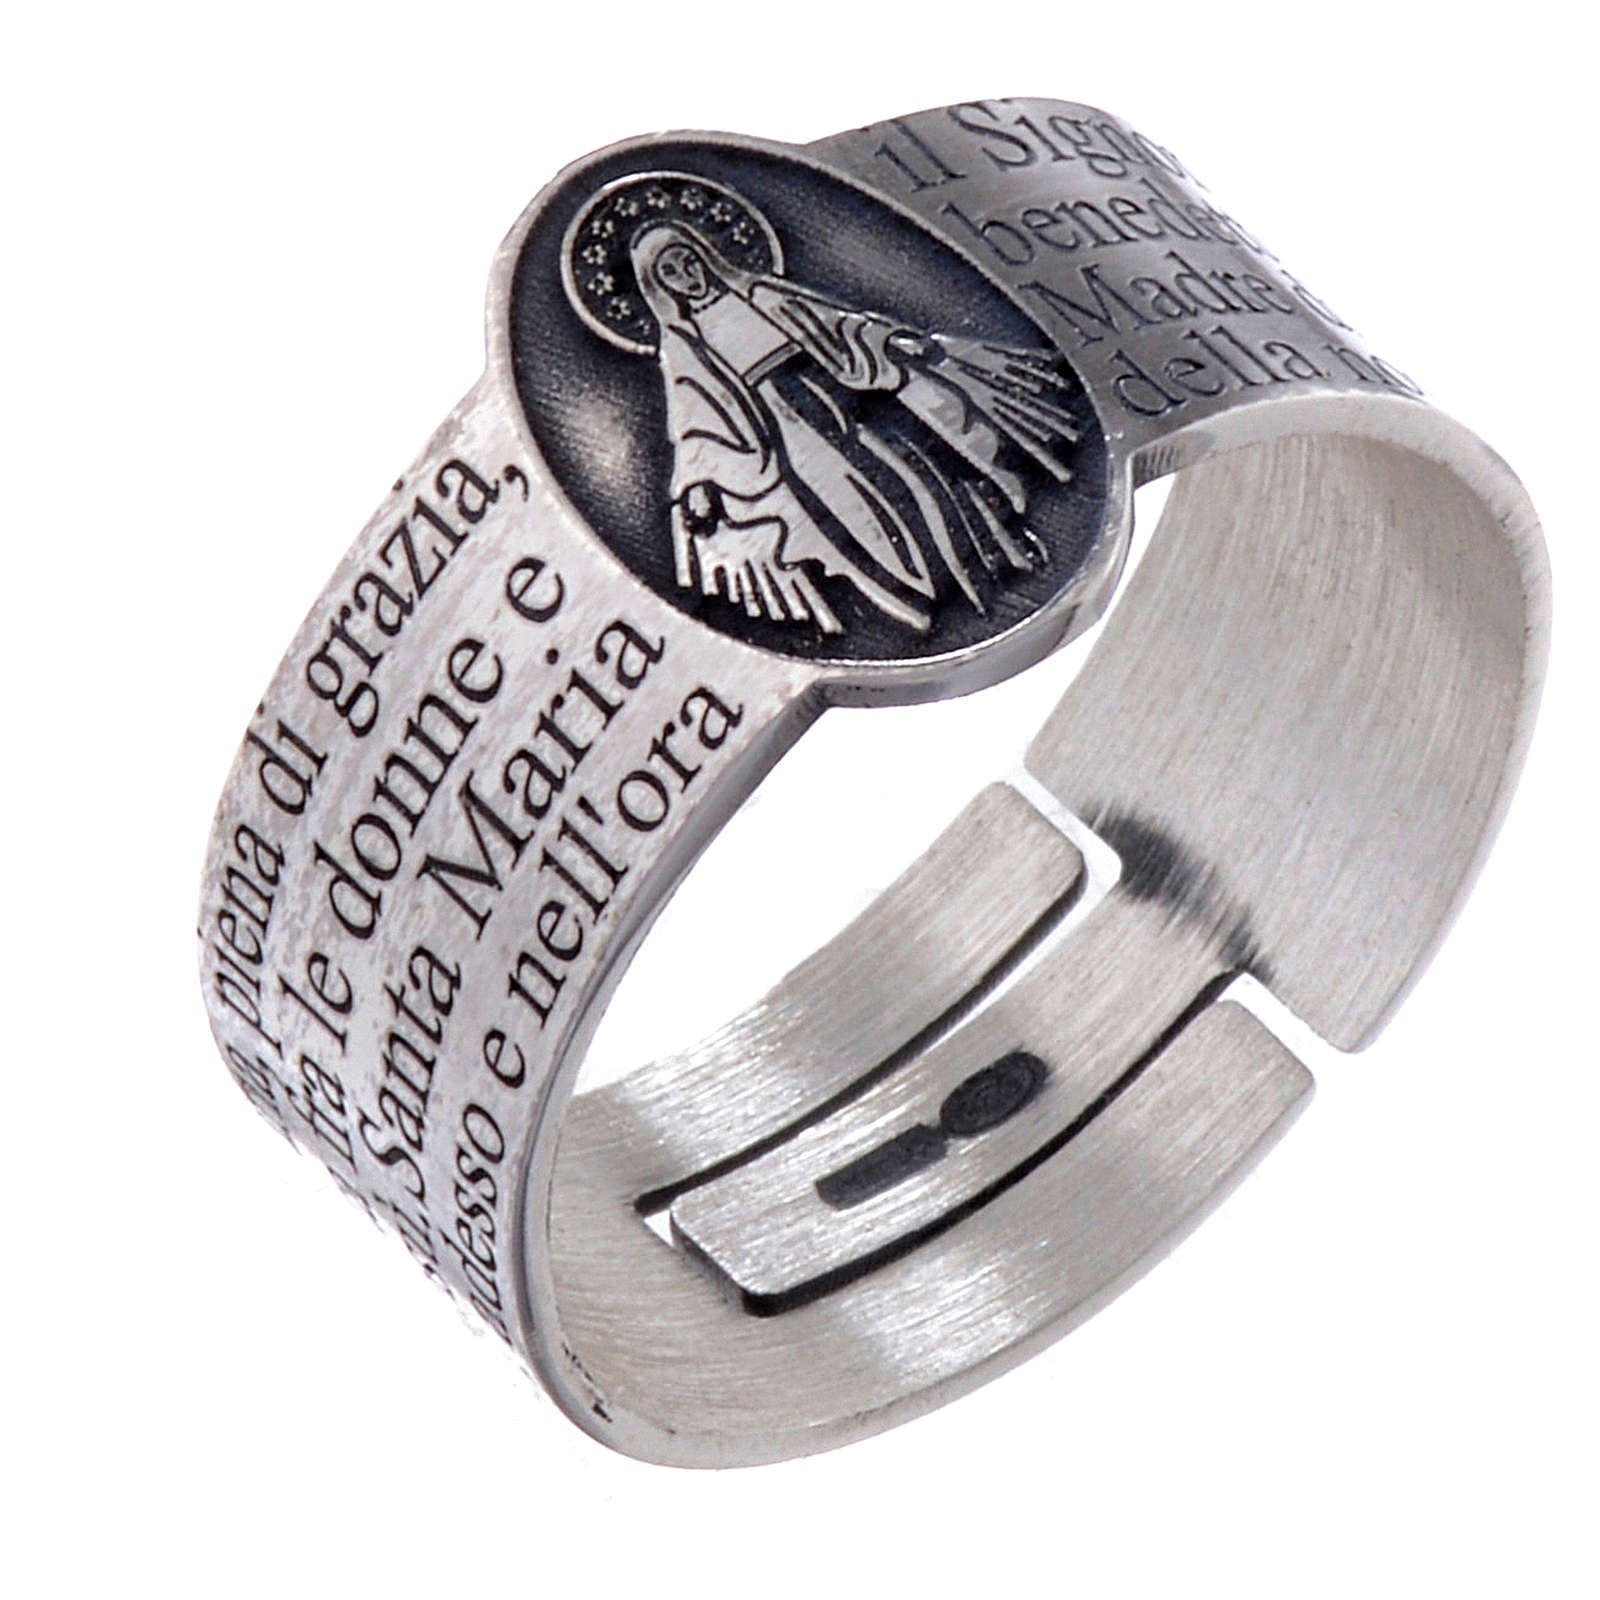 Hail Mary prayer ring in 925 silver, adjustable 3